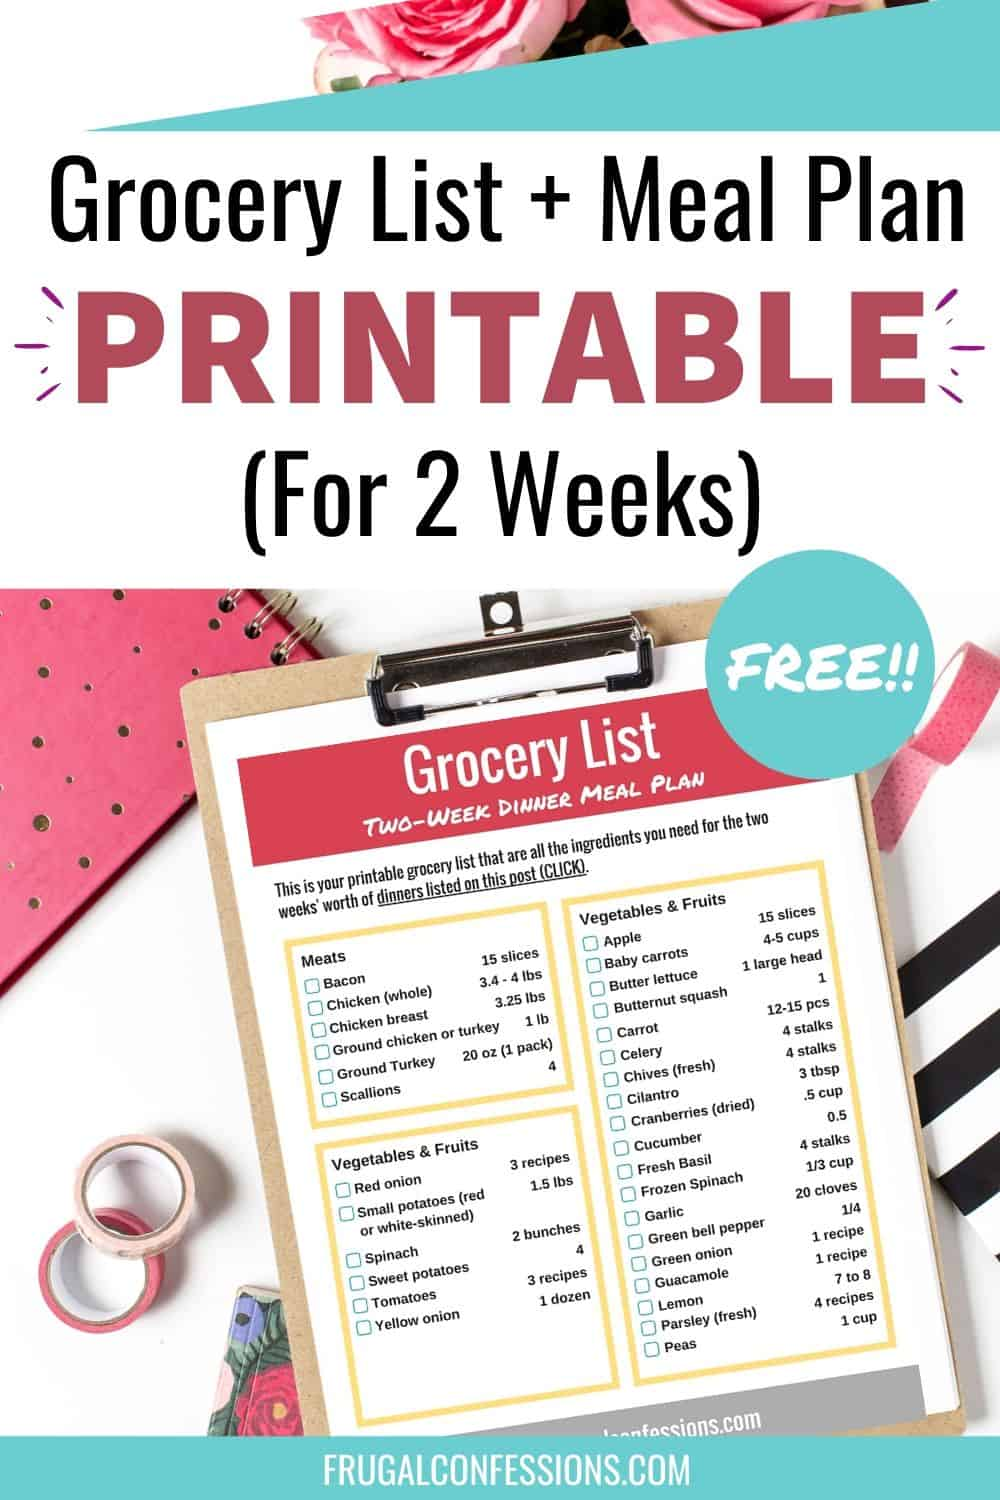 grocery list two week printable on desk backdrop, flatlay with clipboard